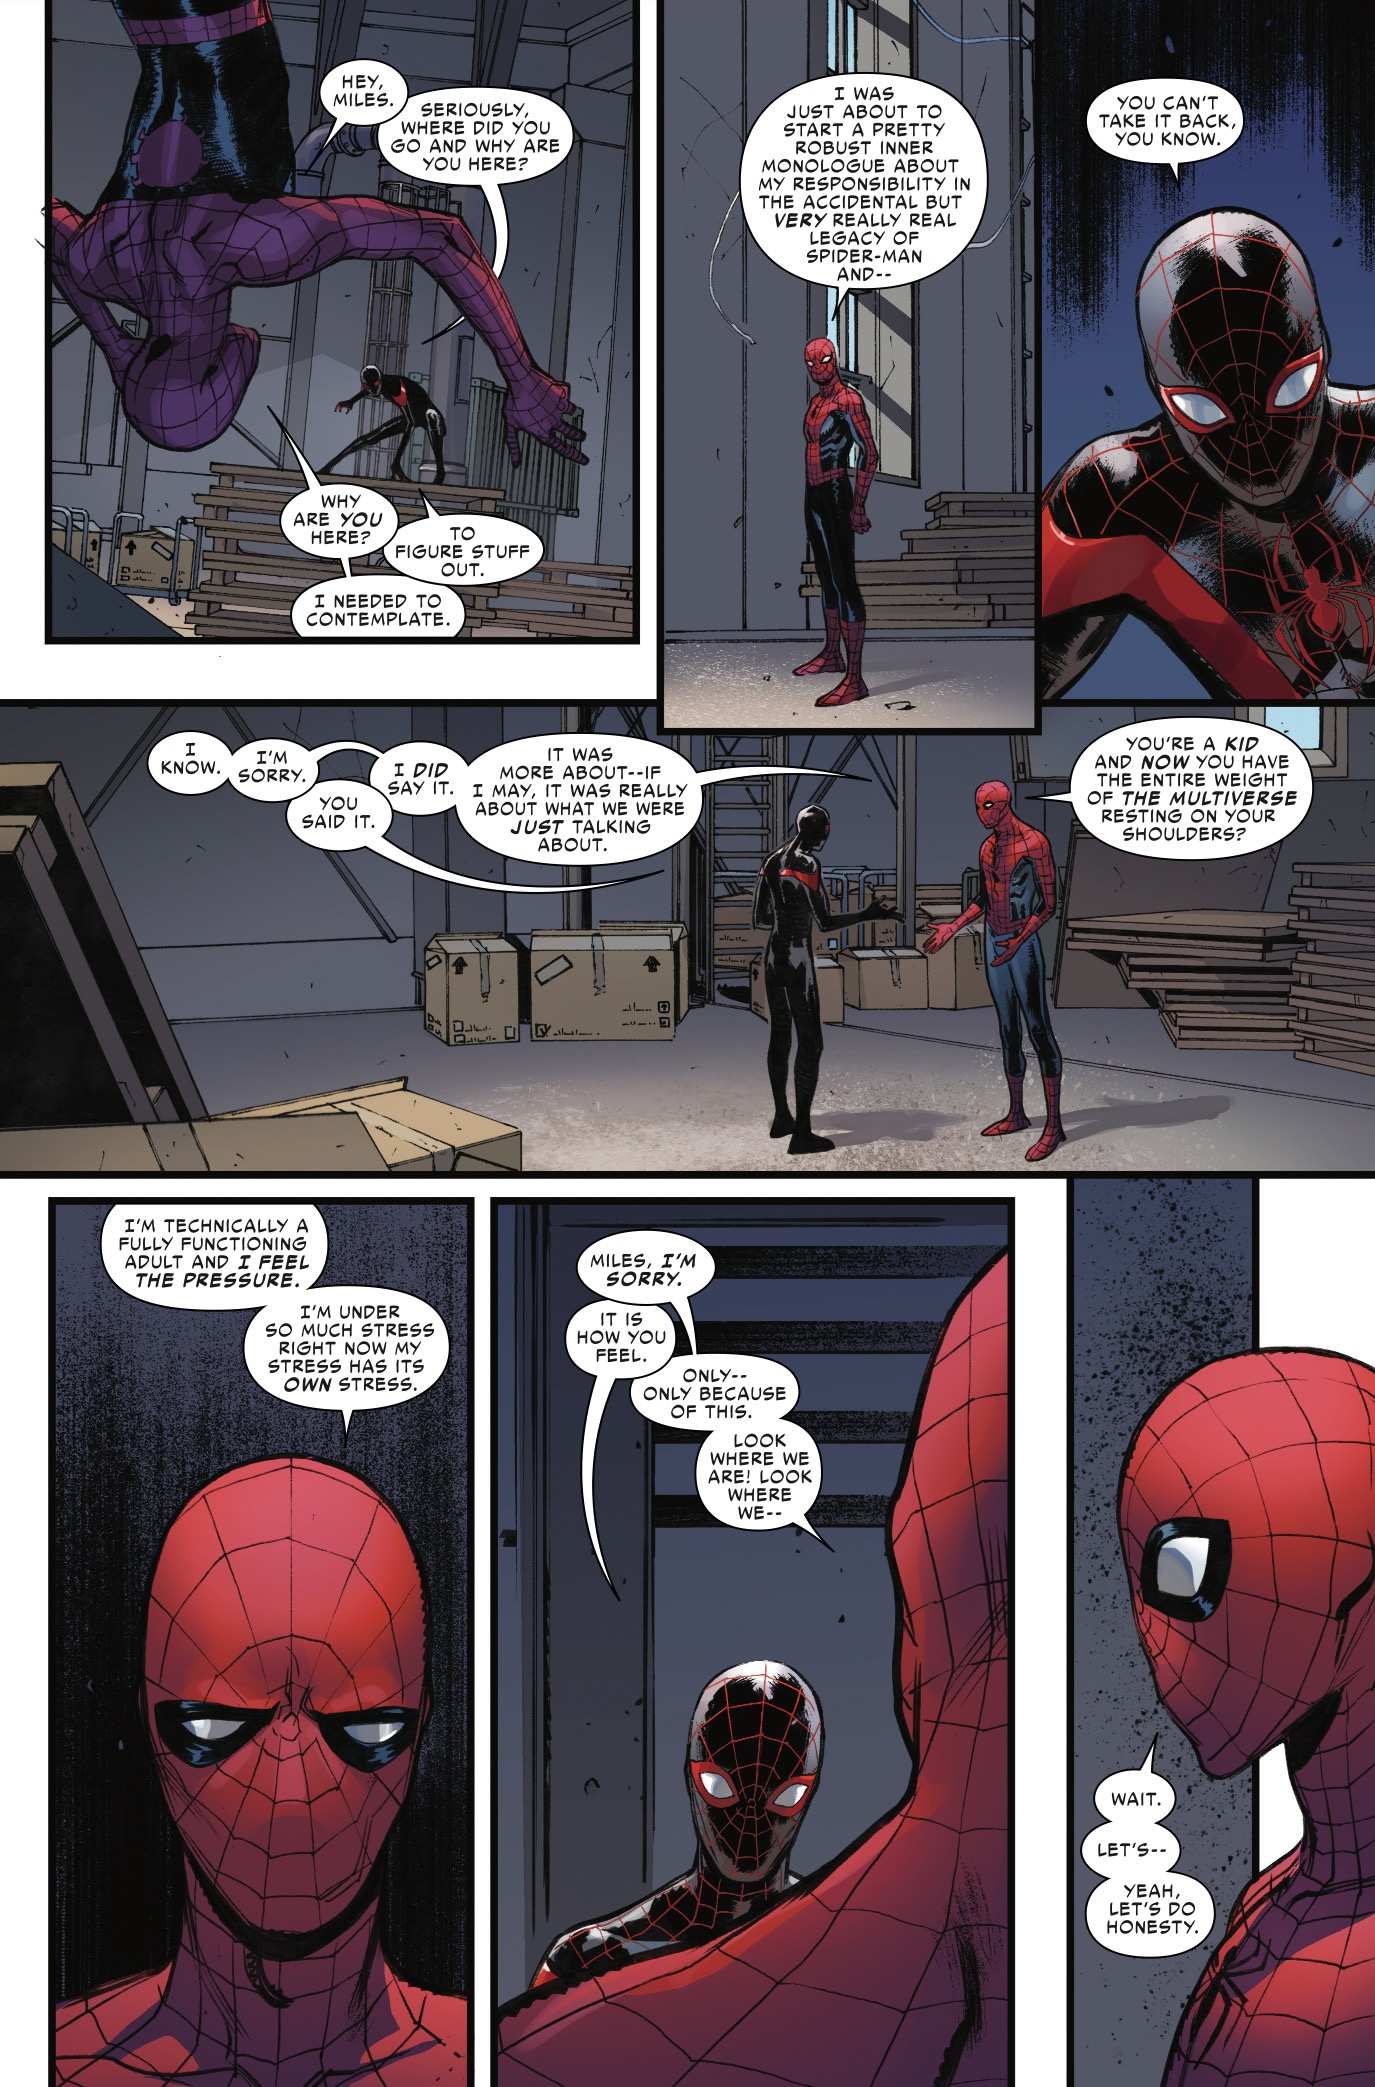 3 Reasons Why: 'Spider-Men II' fleshes out Miles Morales for the future